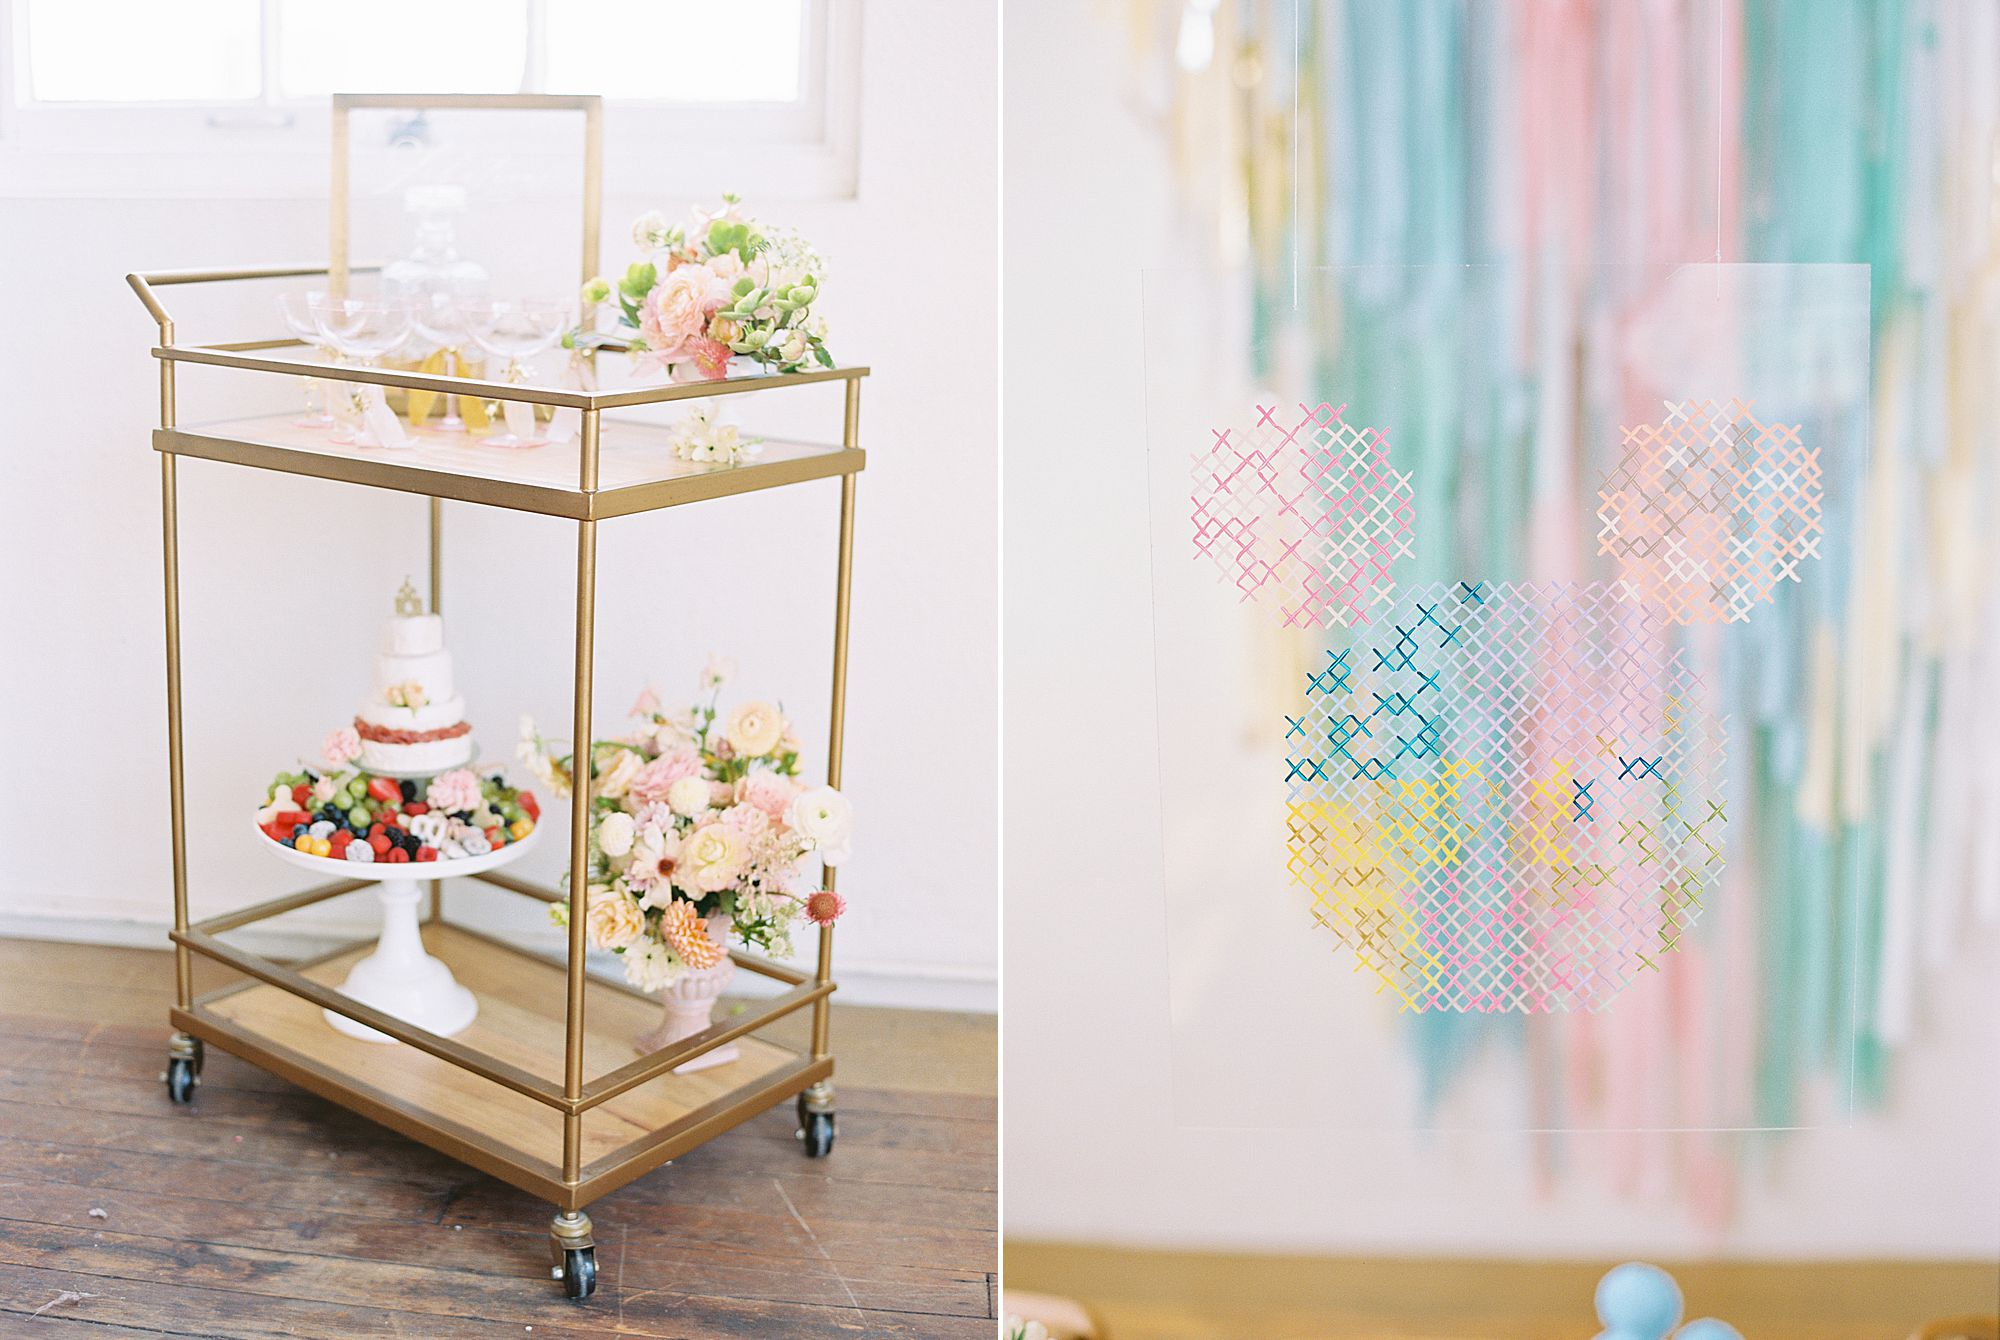 Vintage Disney Birthday Party for Princess Nora's Fourth Birthday - Featured on 100 Layer Cake - Ashley Baumgartner - Parker Grace Events_0008.jpg